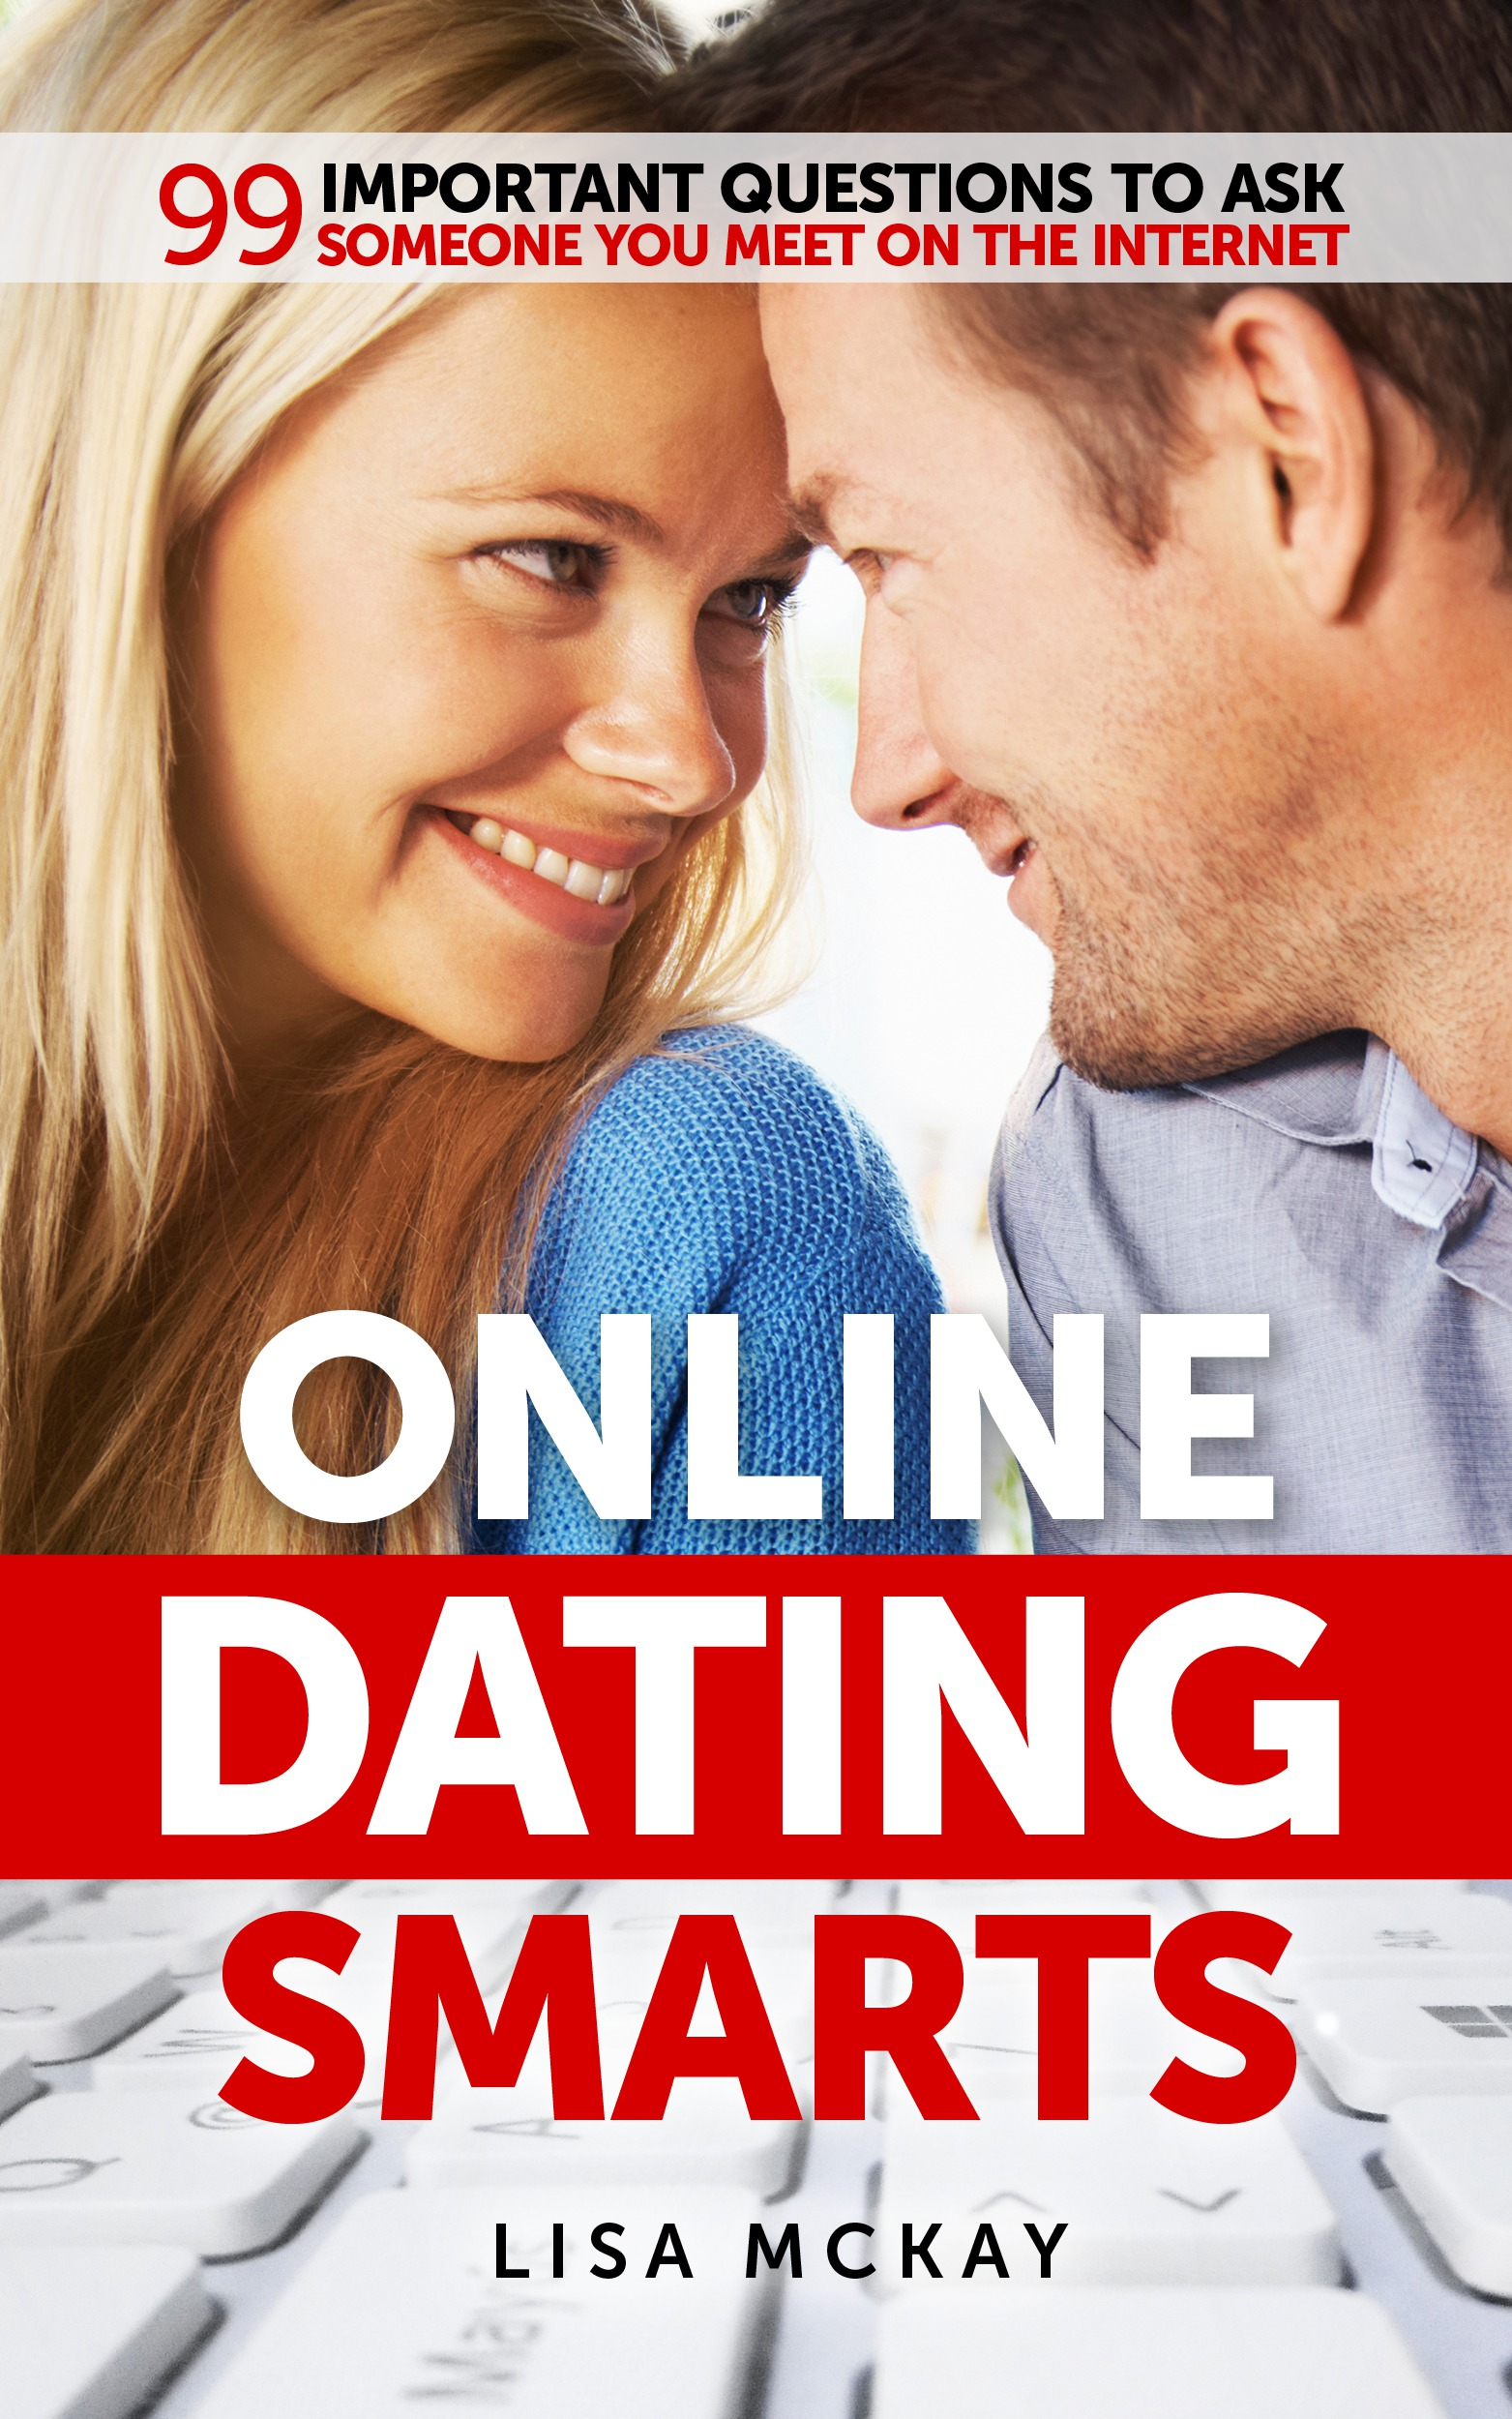 rules of internet dating When a person has been out of the dating scene for many years, online dating provides a way to meet people and see if there is some compatibility before even meeting them in.